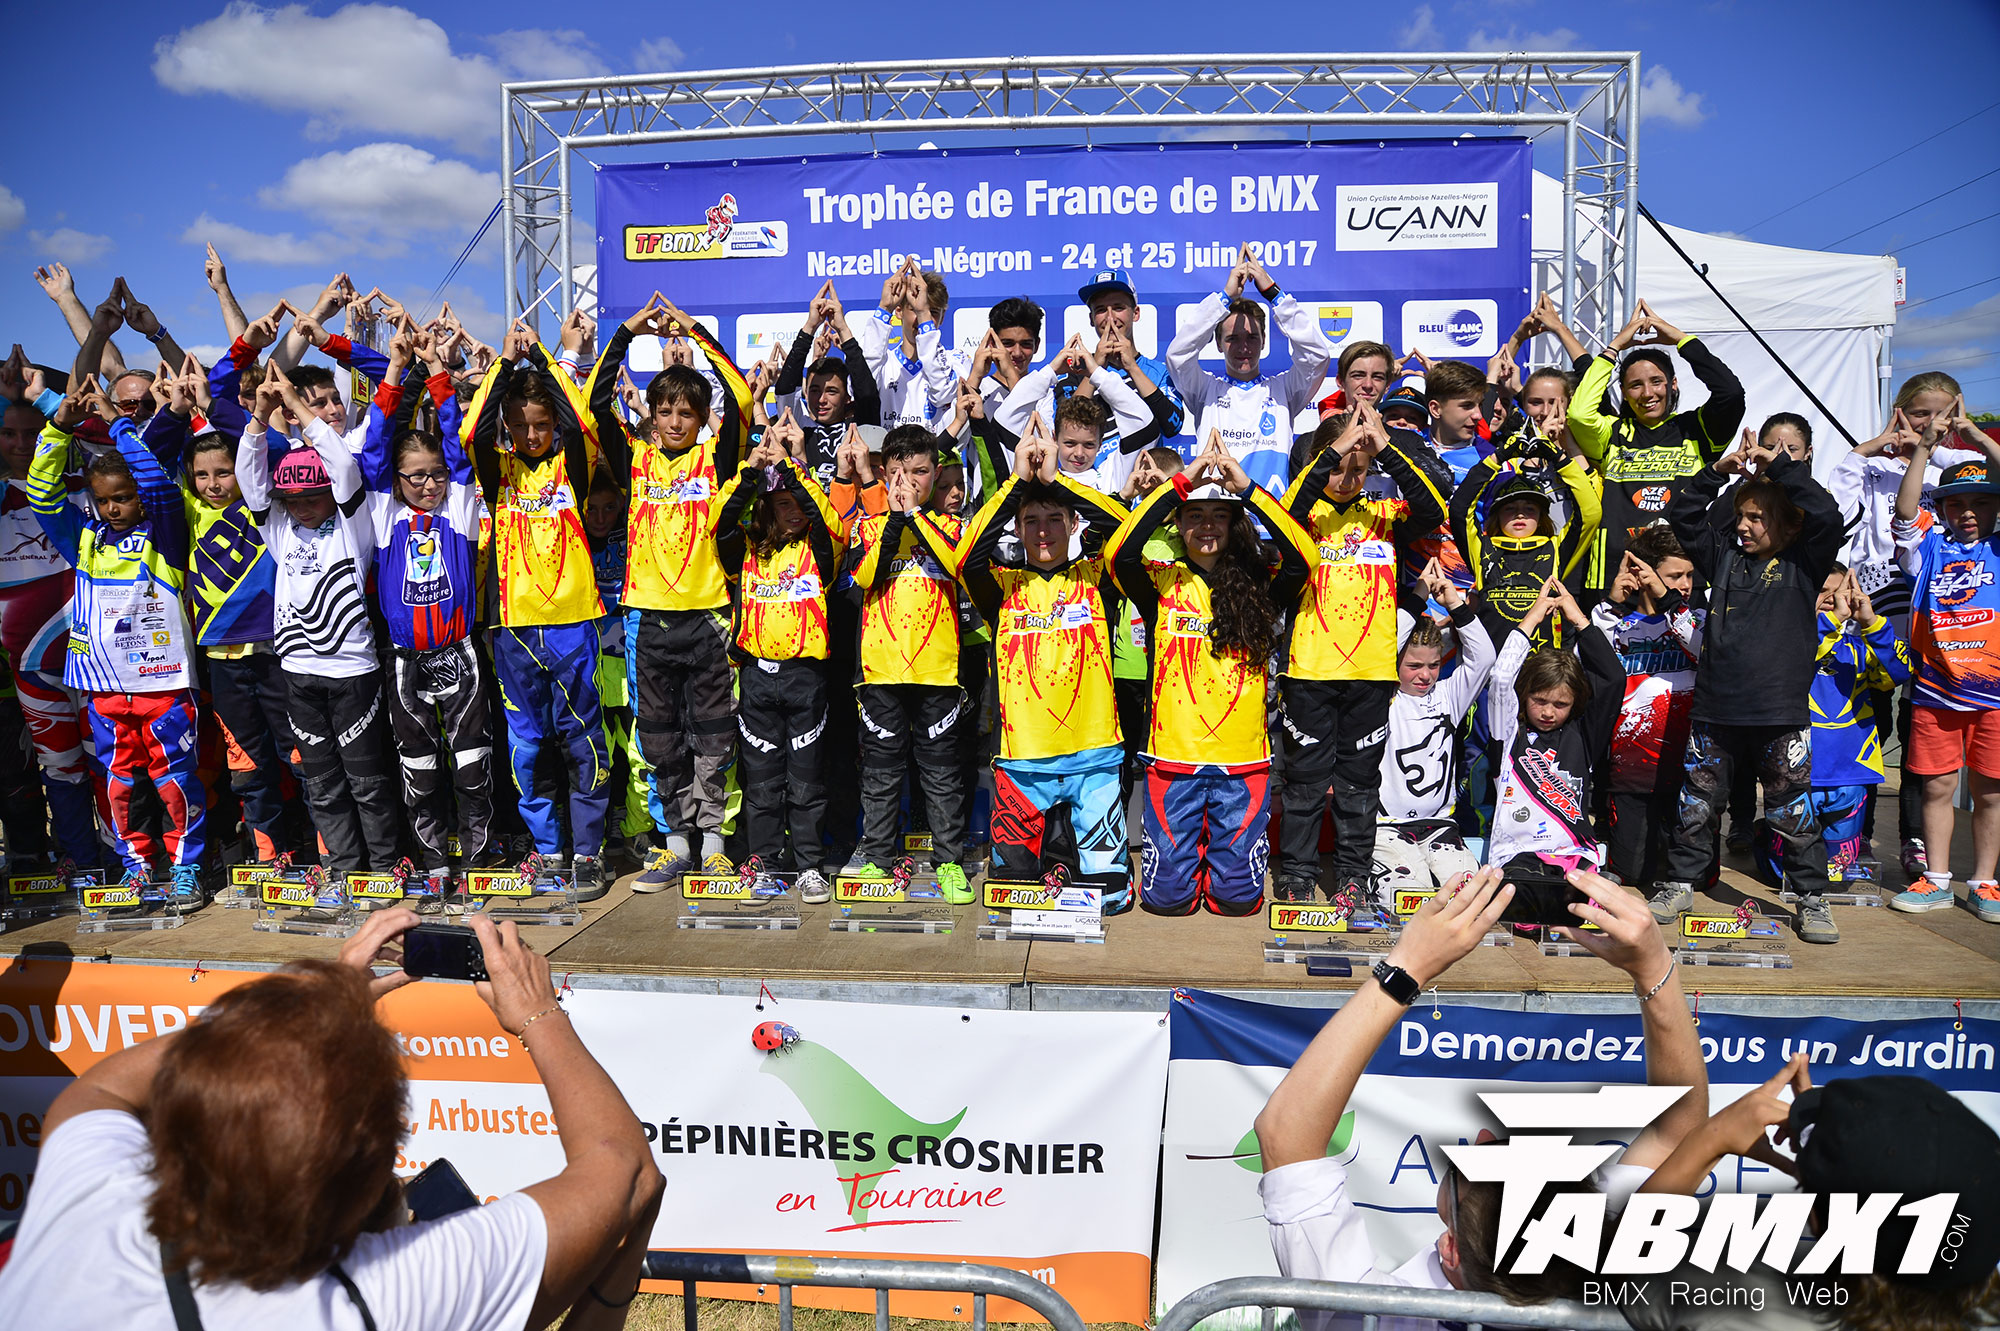 TFBMX 2017 résultats et photos podiums